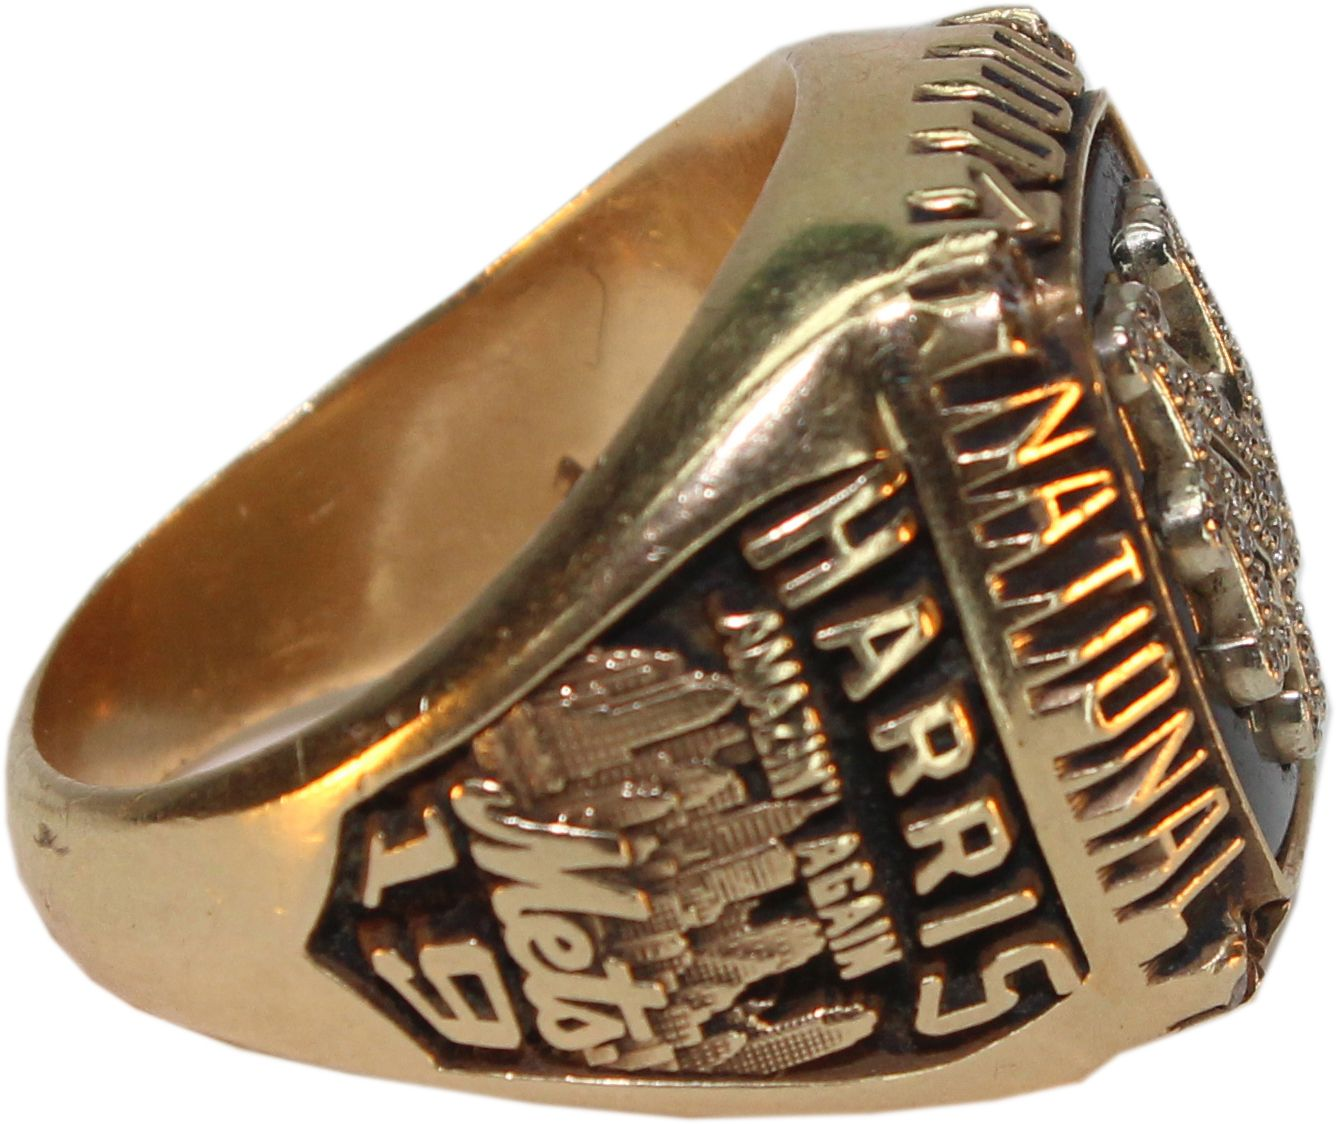 Lot detail 2000 new york mets nl championship ring 14 k 2000 new york mets nl championship ring 14 k lenny harris loa sciox Images